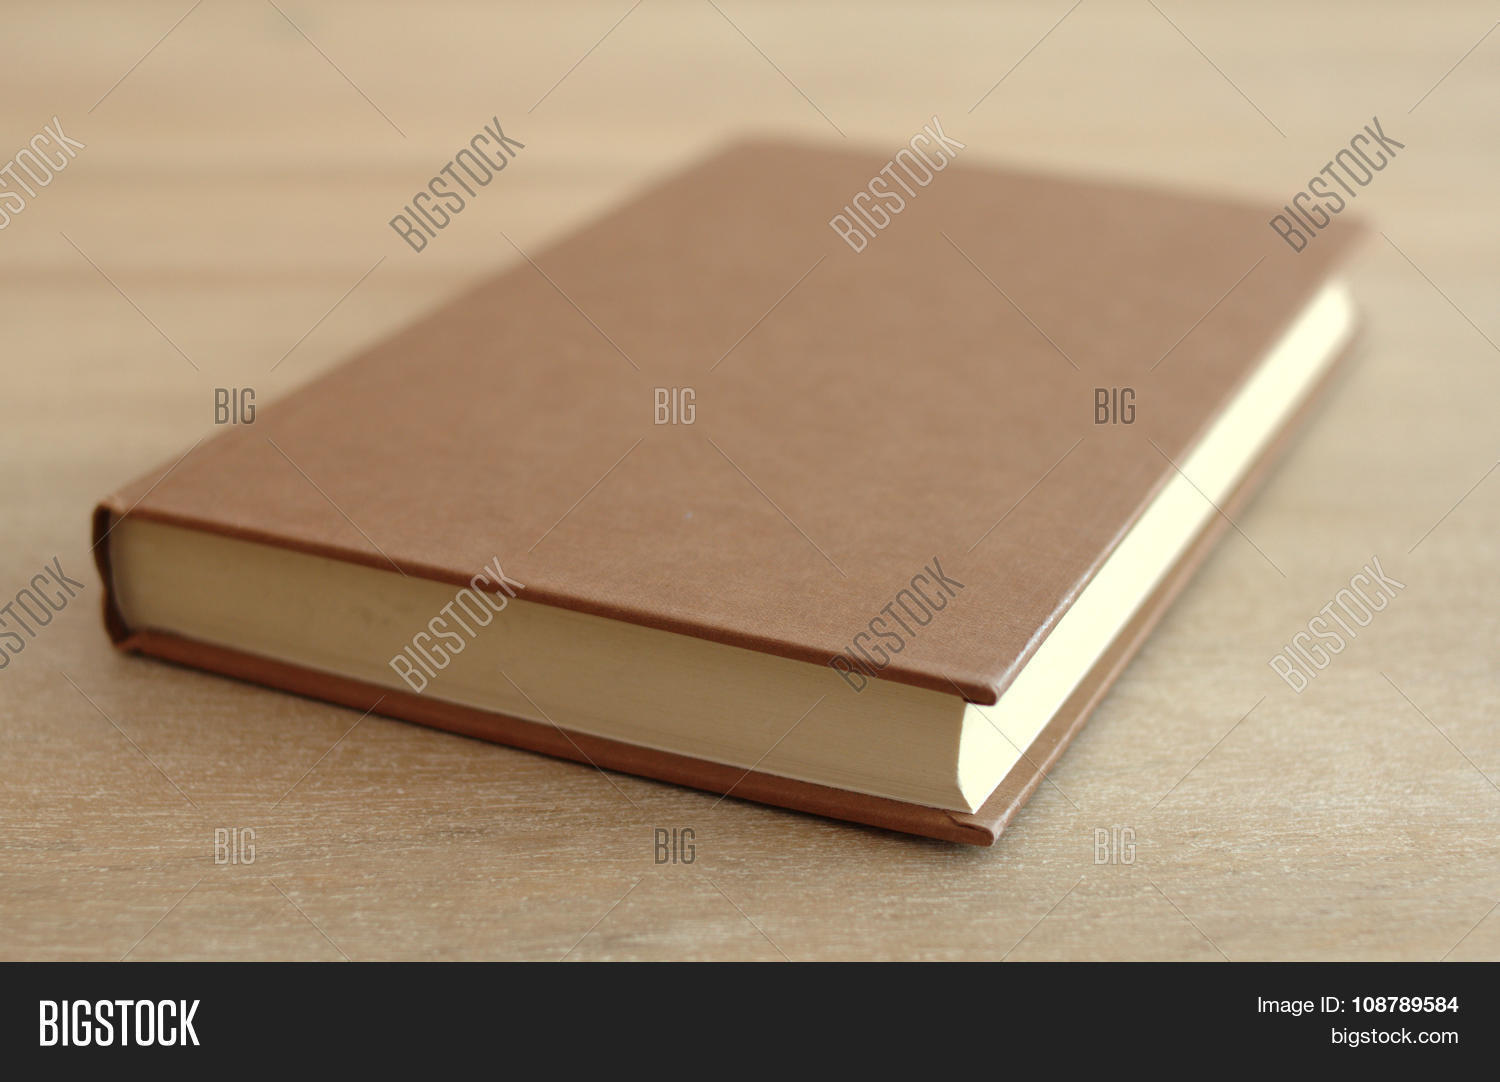 book,book-cover,classical,clean,closed,cover,diary,education,educational,hardbound,hardcover,interior,isolated,knowledge,learn,learning,library,literary,literature,object,old,paper,paperback,private,read,reading,retro,rustic,school,simple,simplicity,single,study,studying,symbol,table,vintage,wisdom,wood,wooden